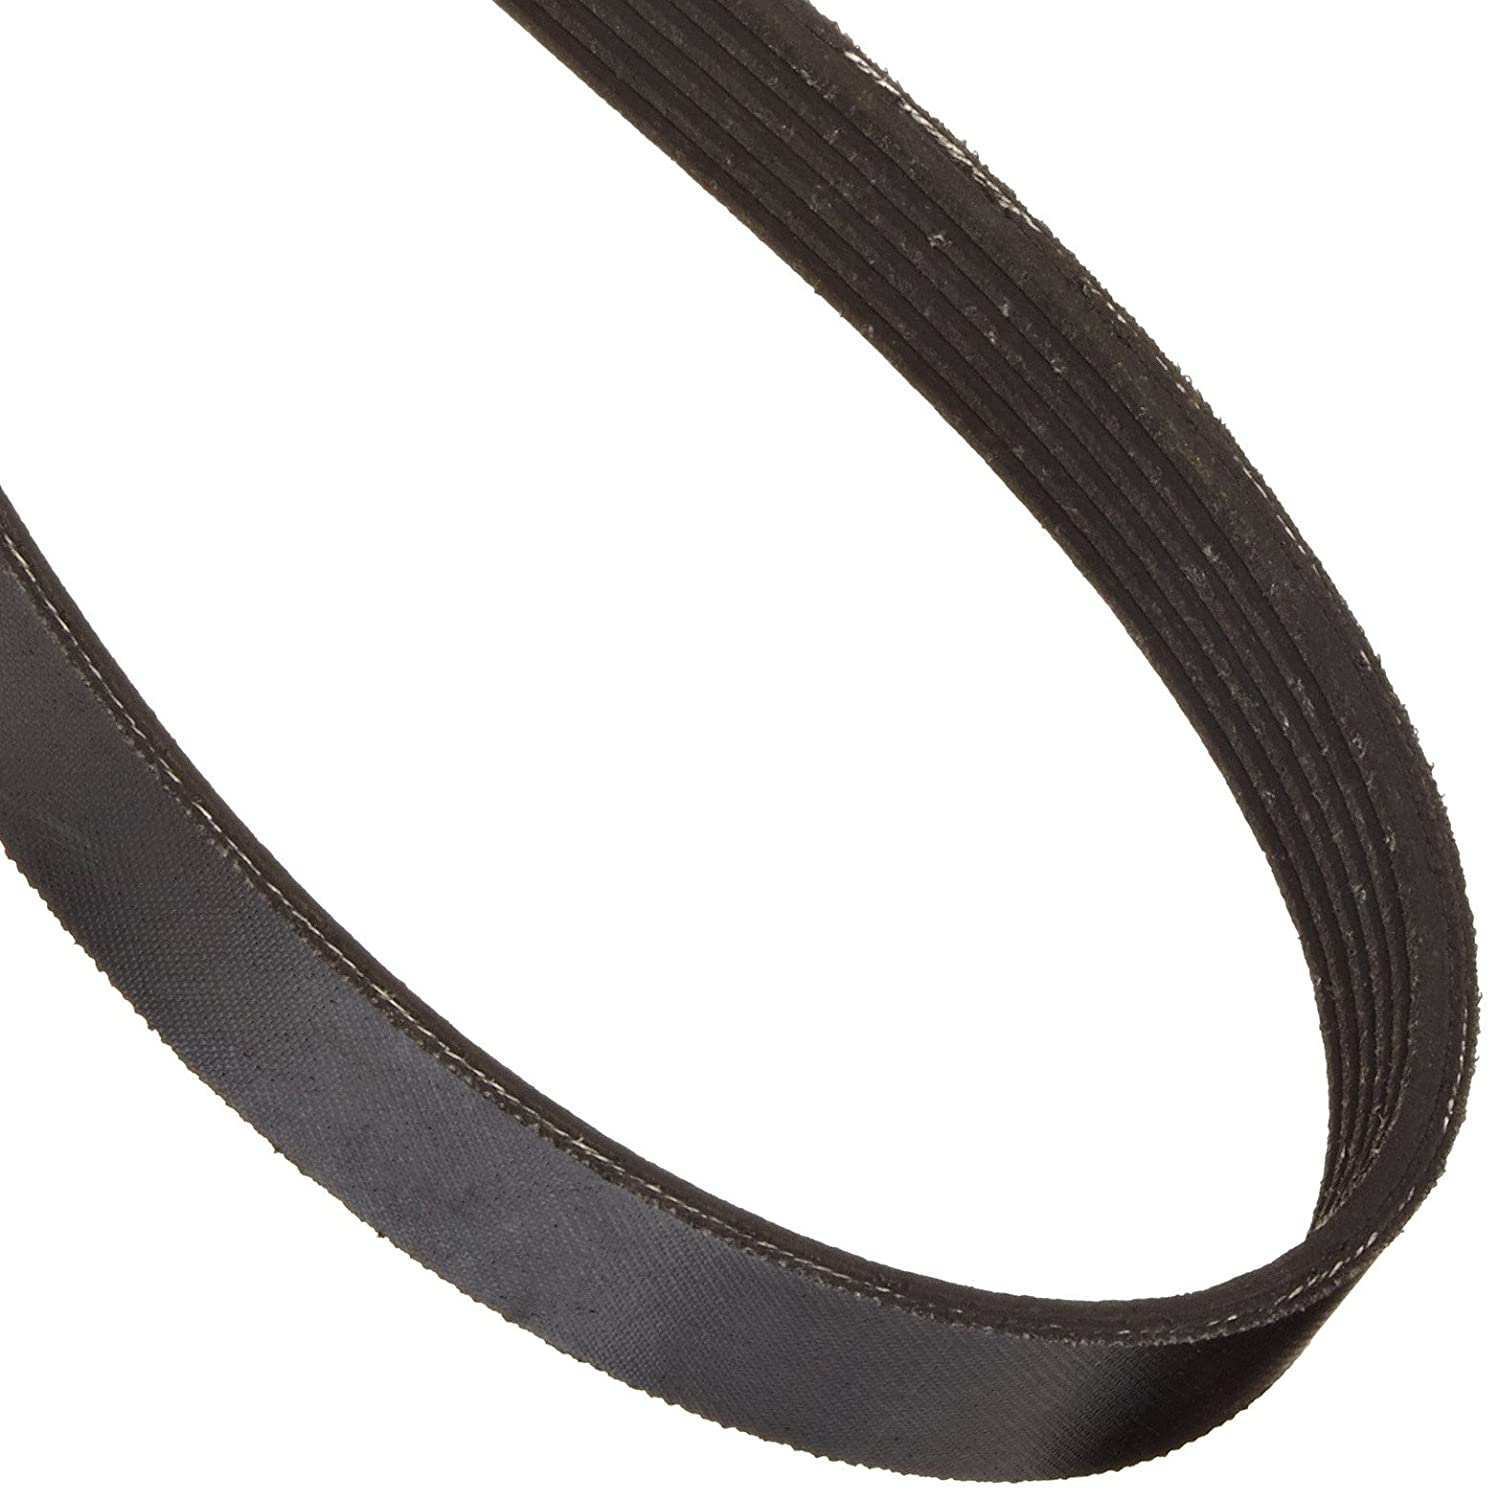 J Tooth Profile 140J6 Ametric/® ANSI Poly-V Belt Mfg Code 1-043 0.092 inch Pitch, 14 Inches Long 6 Ribs